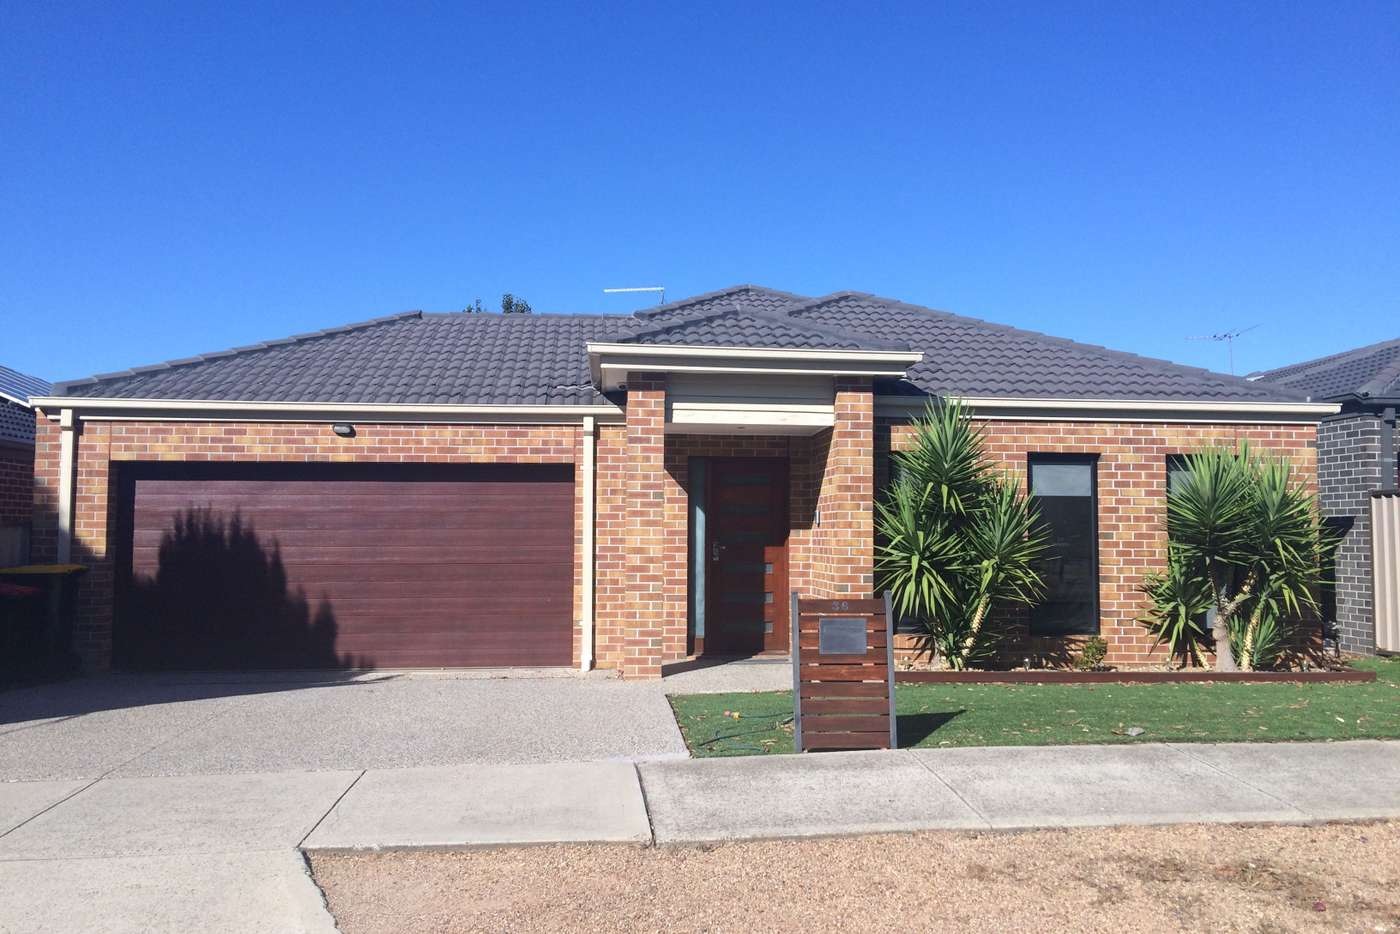 Main view of Homely house listing, 36 Wilkins Crescent, Burnside Heights VIC 3023